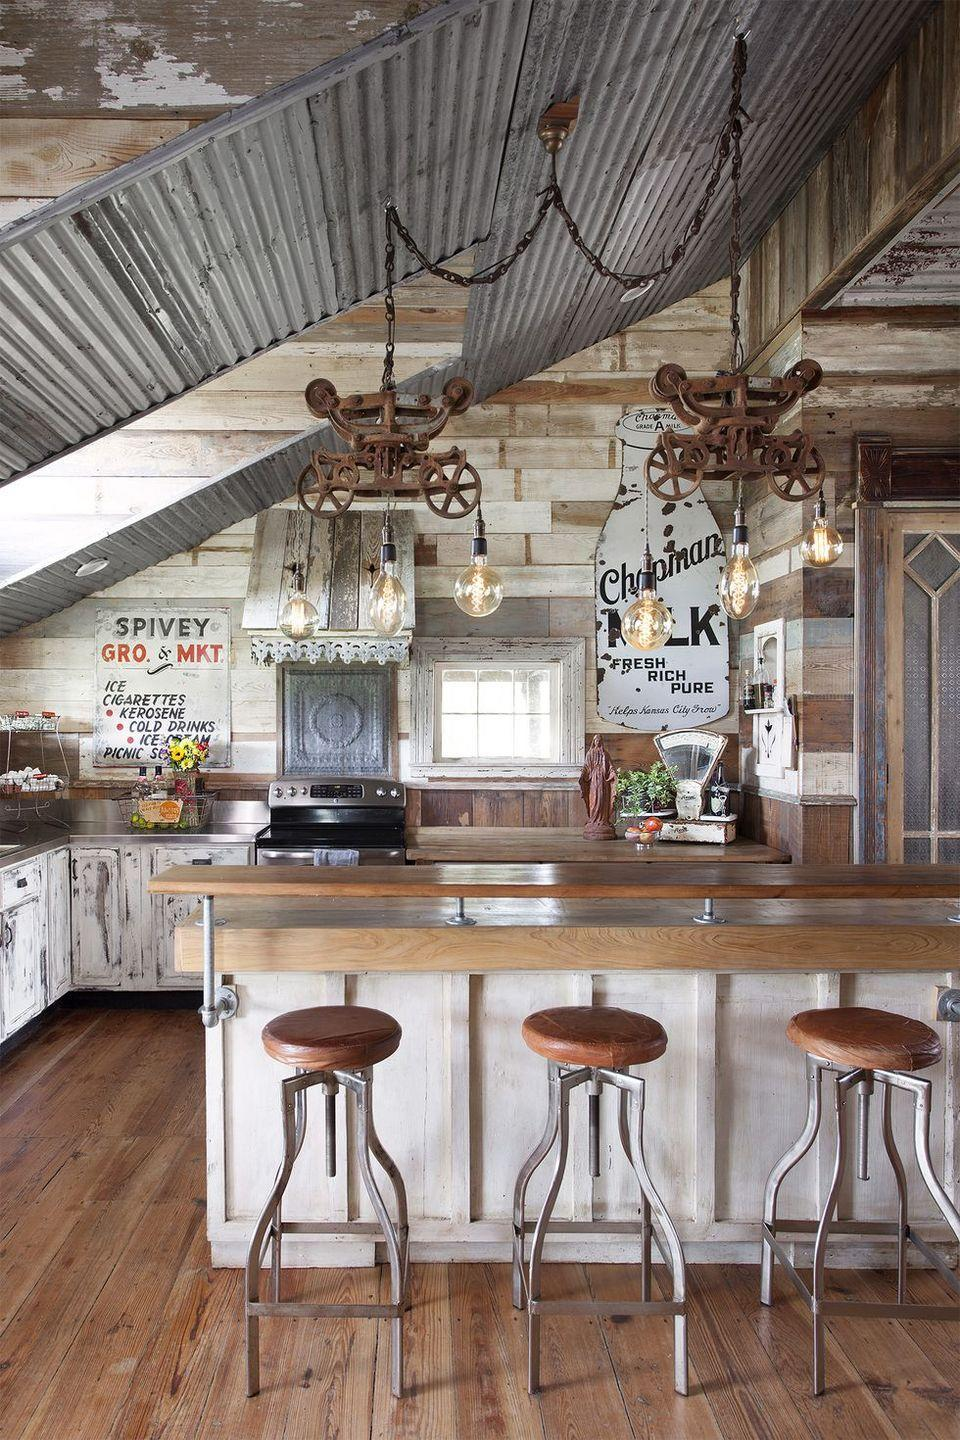 "<p>To us, <a href=""https://www.countryliving.com/home-design/decorating-ideas/g4031/vintage-decor-ideas-inspired-by-grandma/"" rel=""nofollow noopener"" target=""_blank"" data-ylk=""slk:vintage will always be in"" class=""link rapid-noclick-resp"">vintage will always be in</a>. The owners of this <a href=""https://www.countryliving.com/home-design/house-tours/g22853062/old-world-antieks-rustic-farmhouse-tour/"" rel=""nofollow noopener"" target=""_blank"" data-ylk=""slk:Texas farmhouse"" class=""link rapid-noclick-resp"">Texas farmhouse</a> show their love of repurposed pieces with matching reclaimed pine throughout the home.</p><p><a class=""link rapid-noclick-resp"" href=""https://www.amazon.com/s?k=reclaimed+wood&ref=nb_sb_noss&tag=syn-yahoo-20&ascsubtag=%5Bartid%7C10050.g.3988%5Bsrc%7Cyahoo-us"" rel=""nofollow noopener"" target=""_blank"" data-ylk=""slk:SHOP RECLAIMED WOOD"">SHOP RECLAIMED WOOD</a></p>"